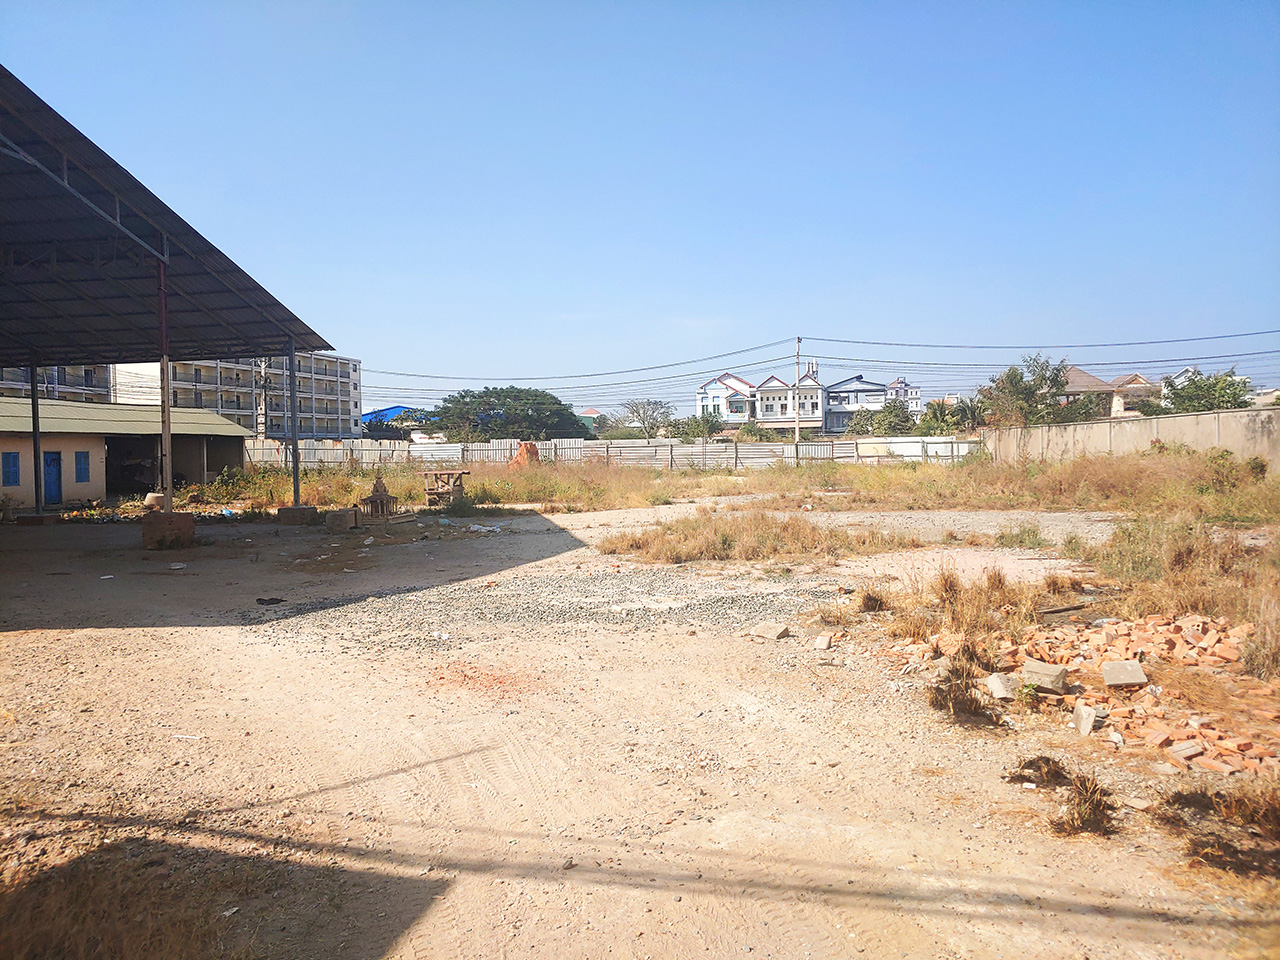 Commercial 1200 Sq.m potential land for rent near AEON MALL 2